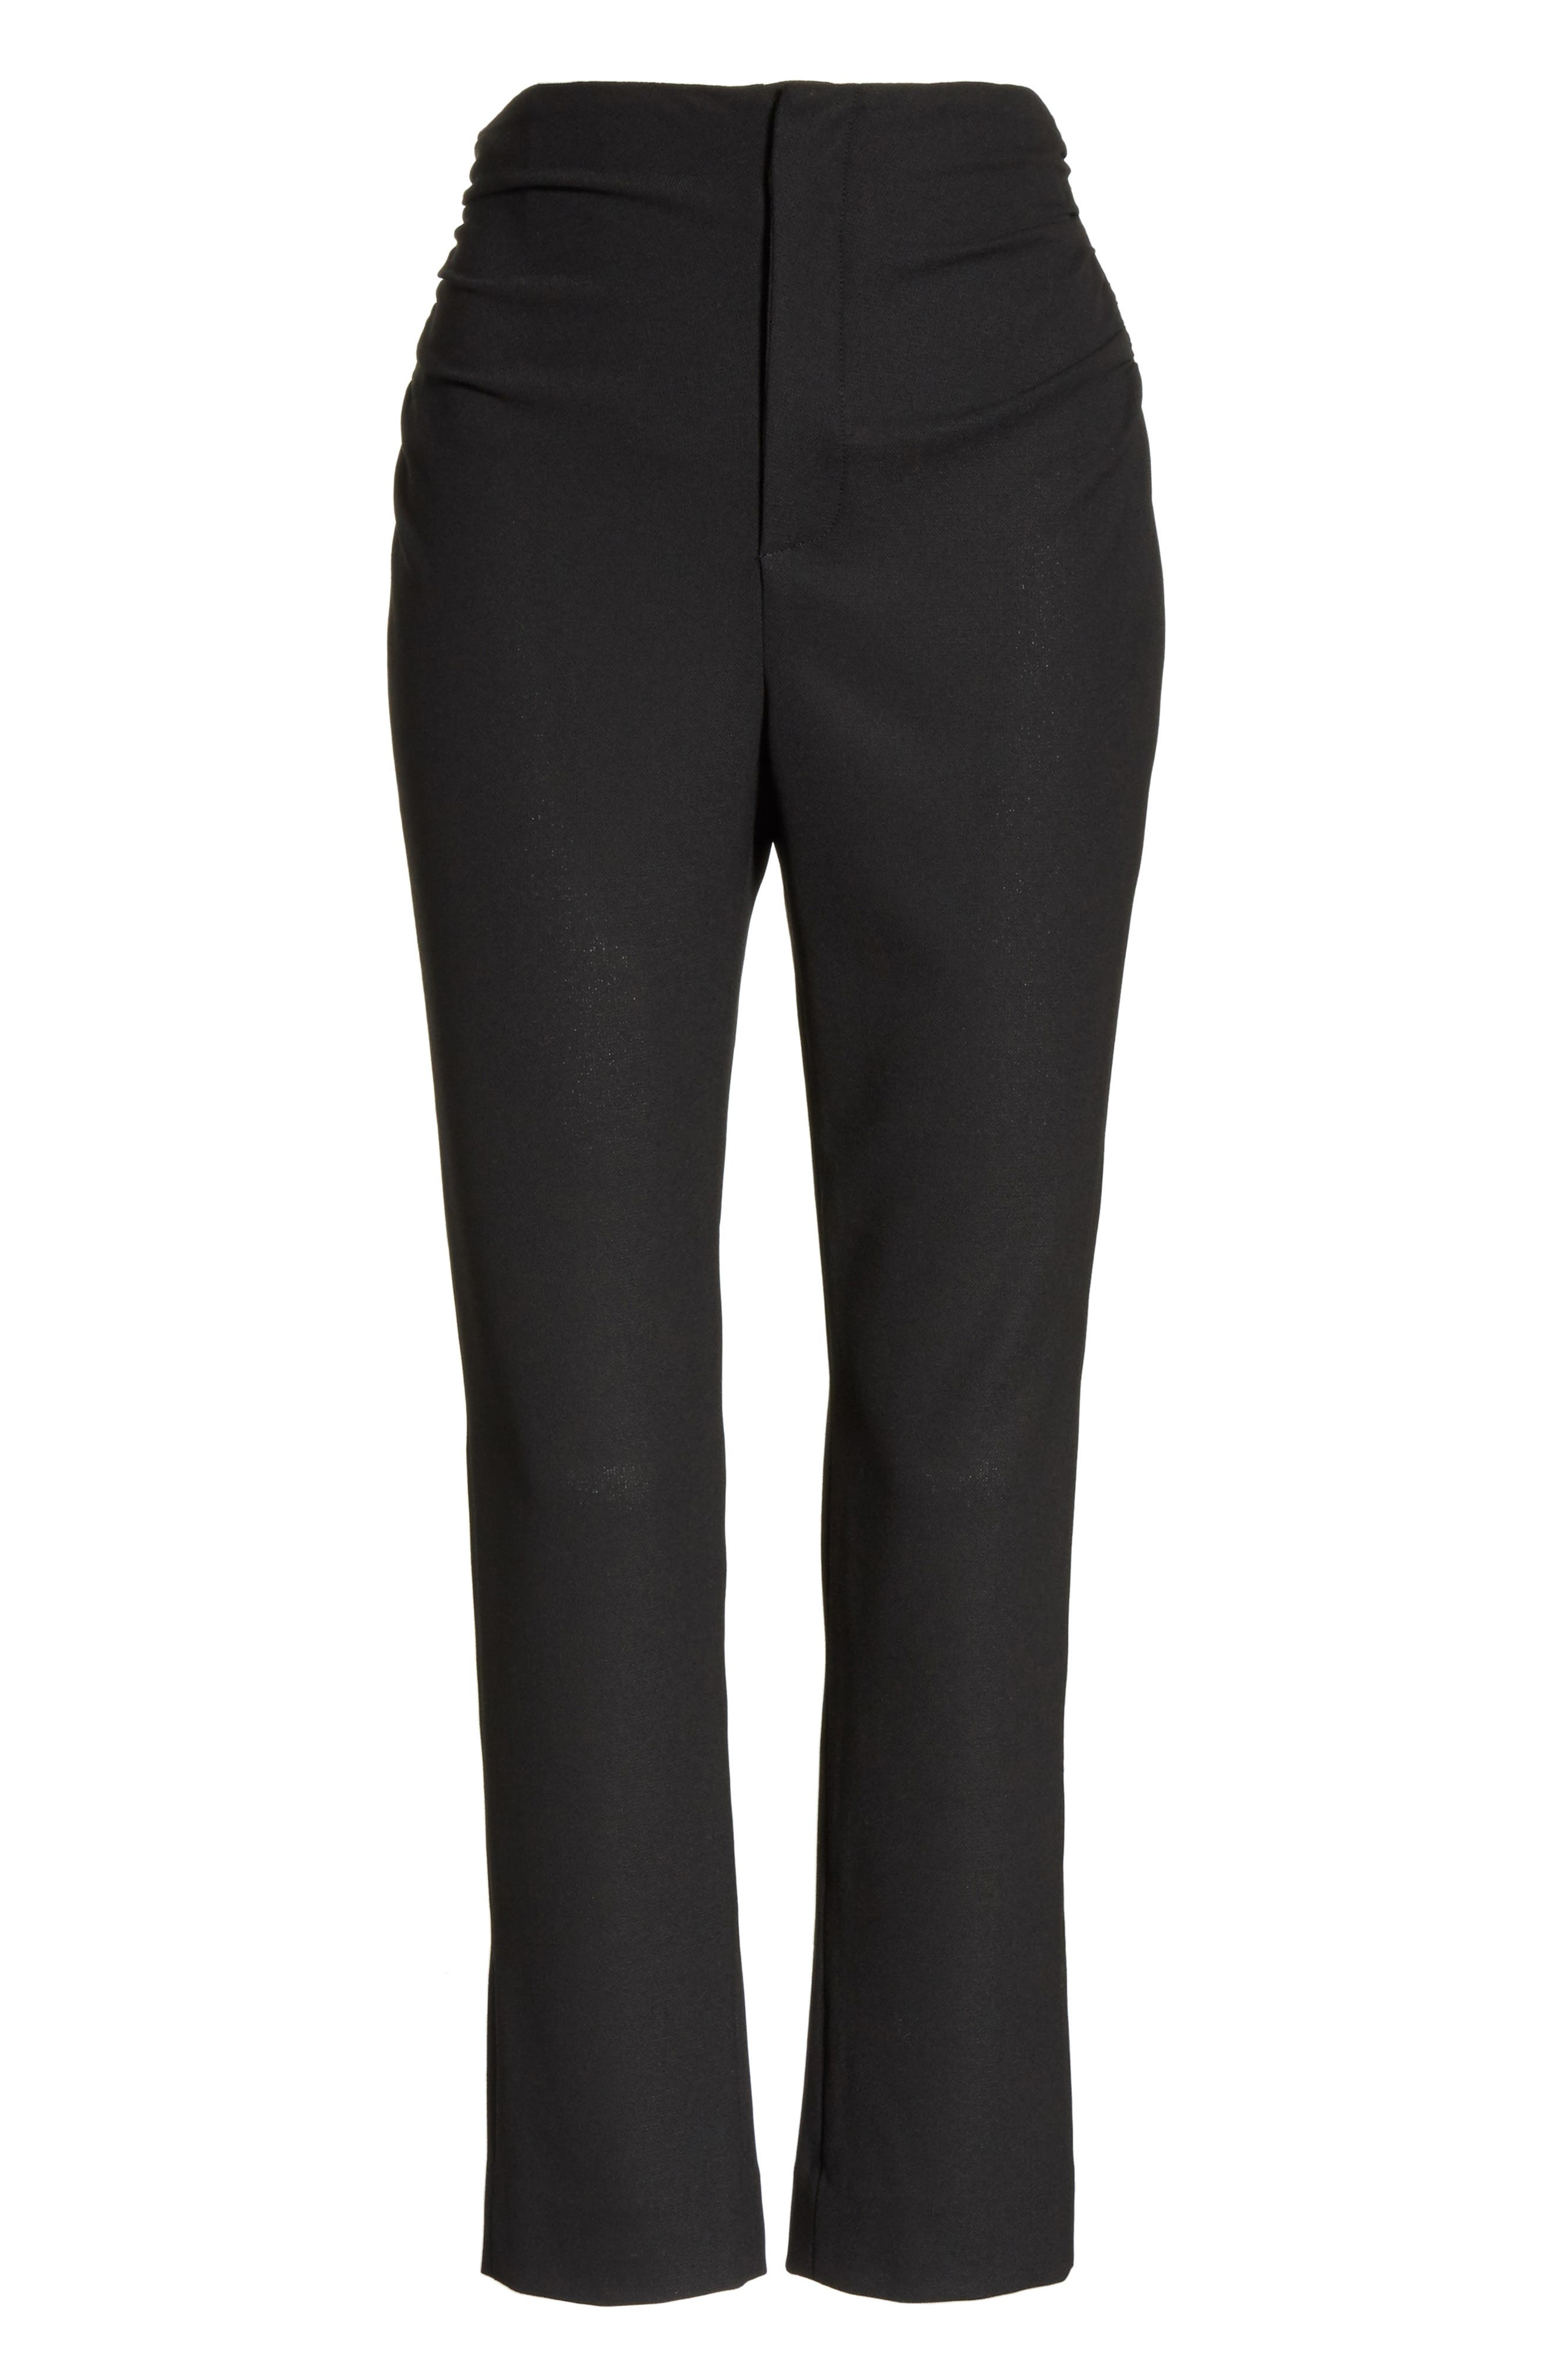 Le Corsaire Slim Crop Pants,                             Alternate thumbnail 6, color,                             Black